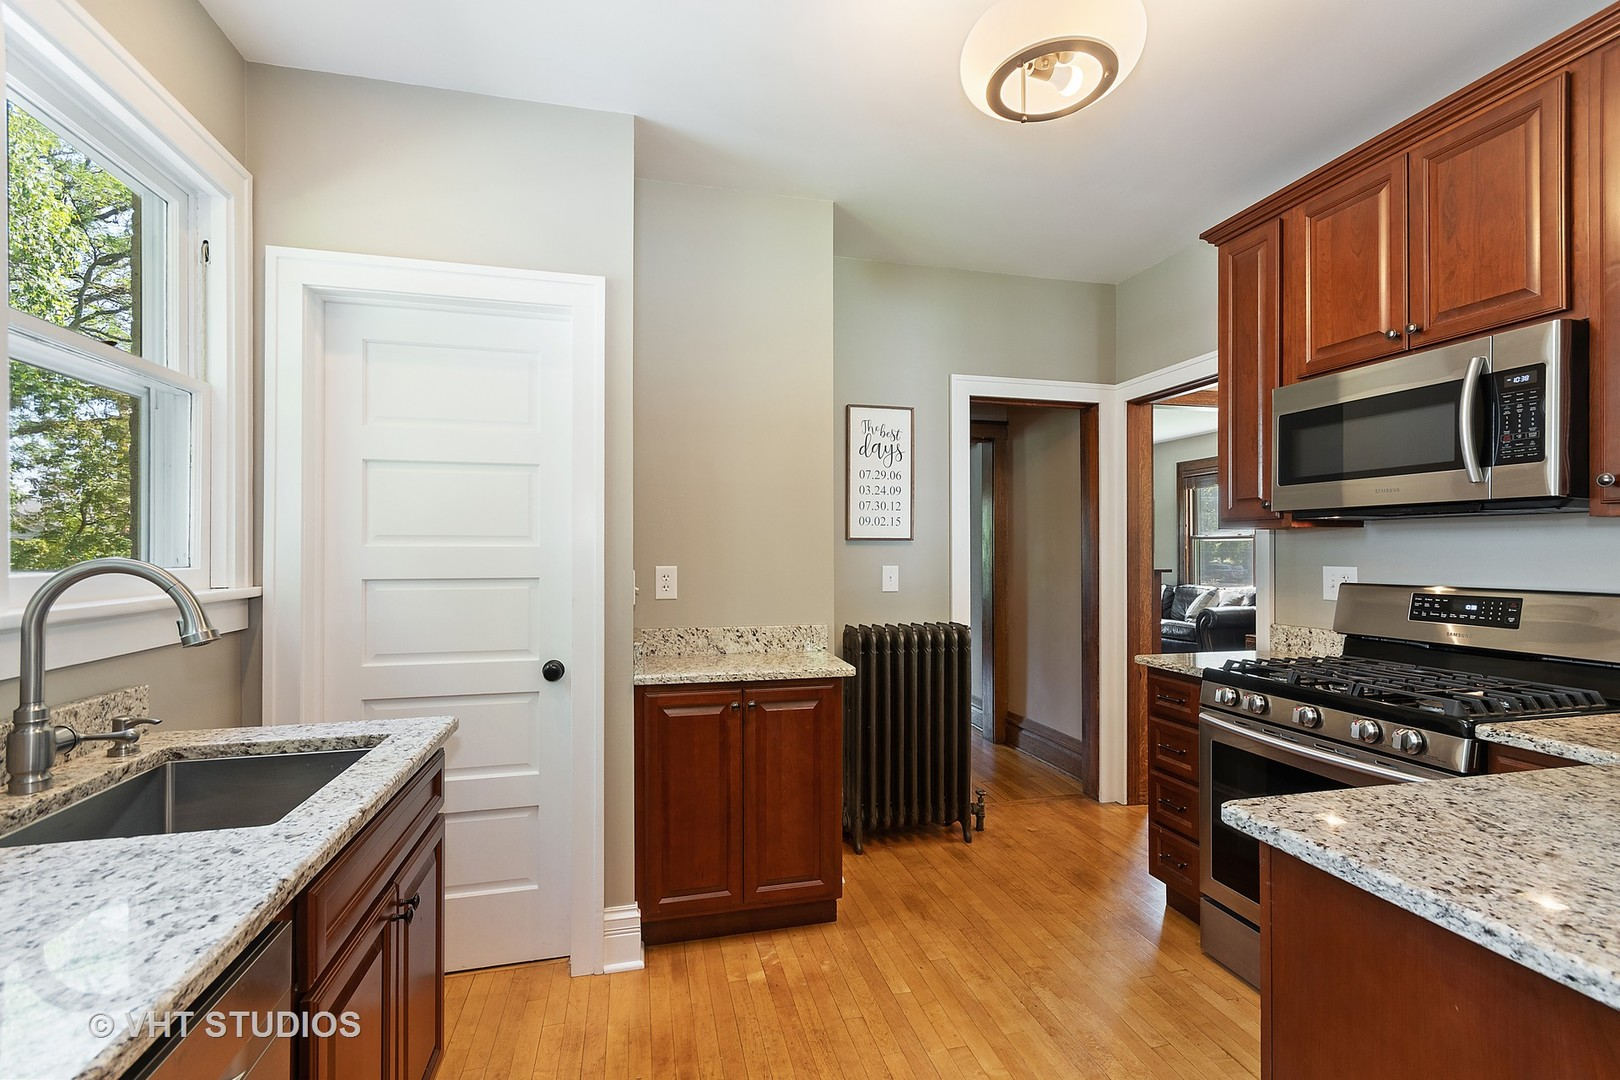 615 South 3rd, ST. CHARLES, Illinois, 60174